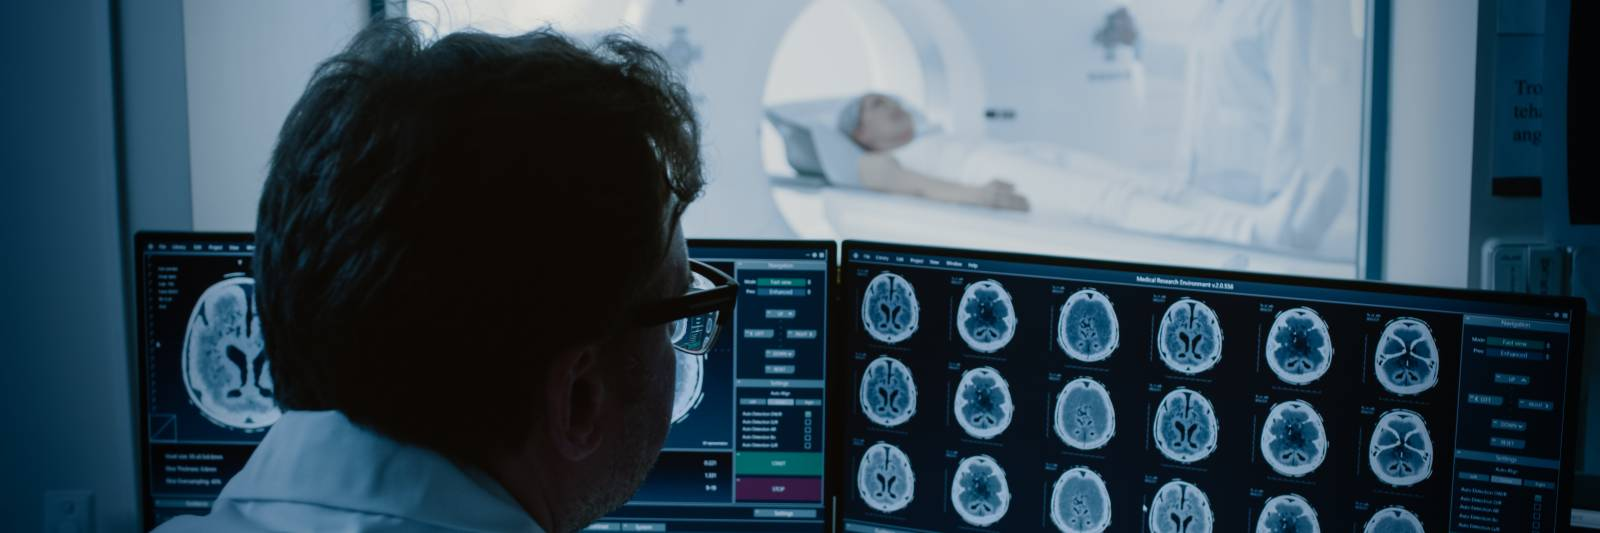 Researchers Find 45 Million Medical Images Exposed Online